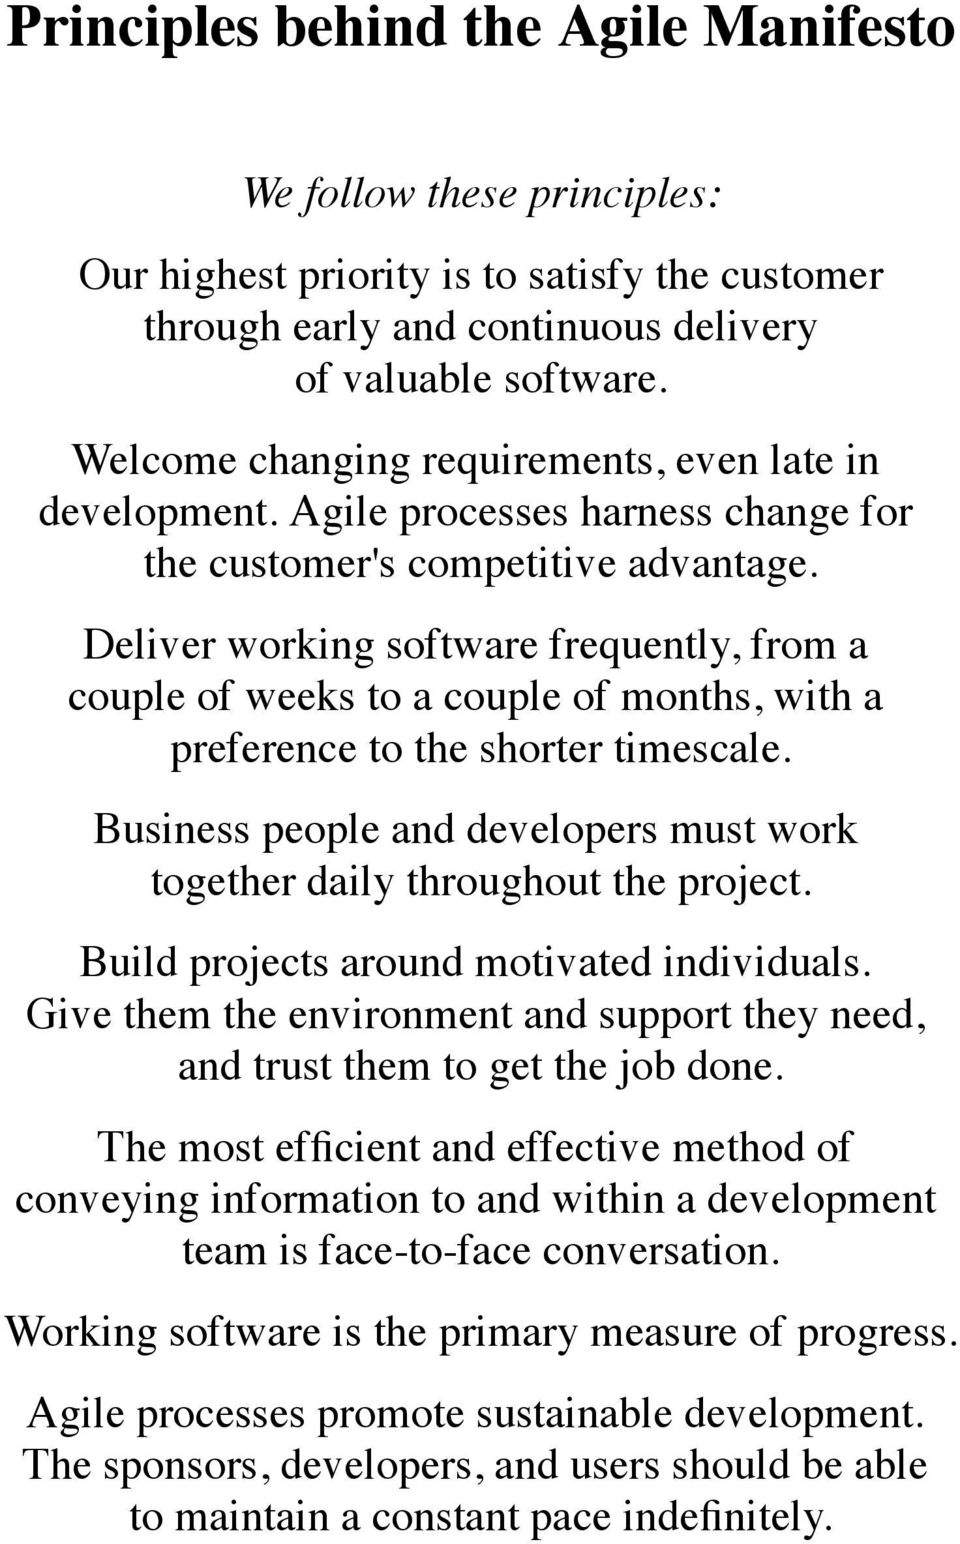 Deliver working software frequently, from a couple of weeks to a couple of months, with a preference to the shorter timescale.